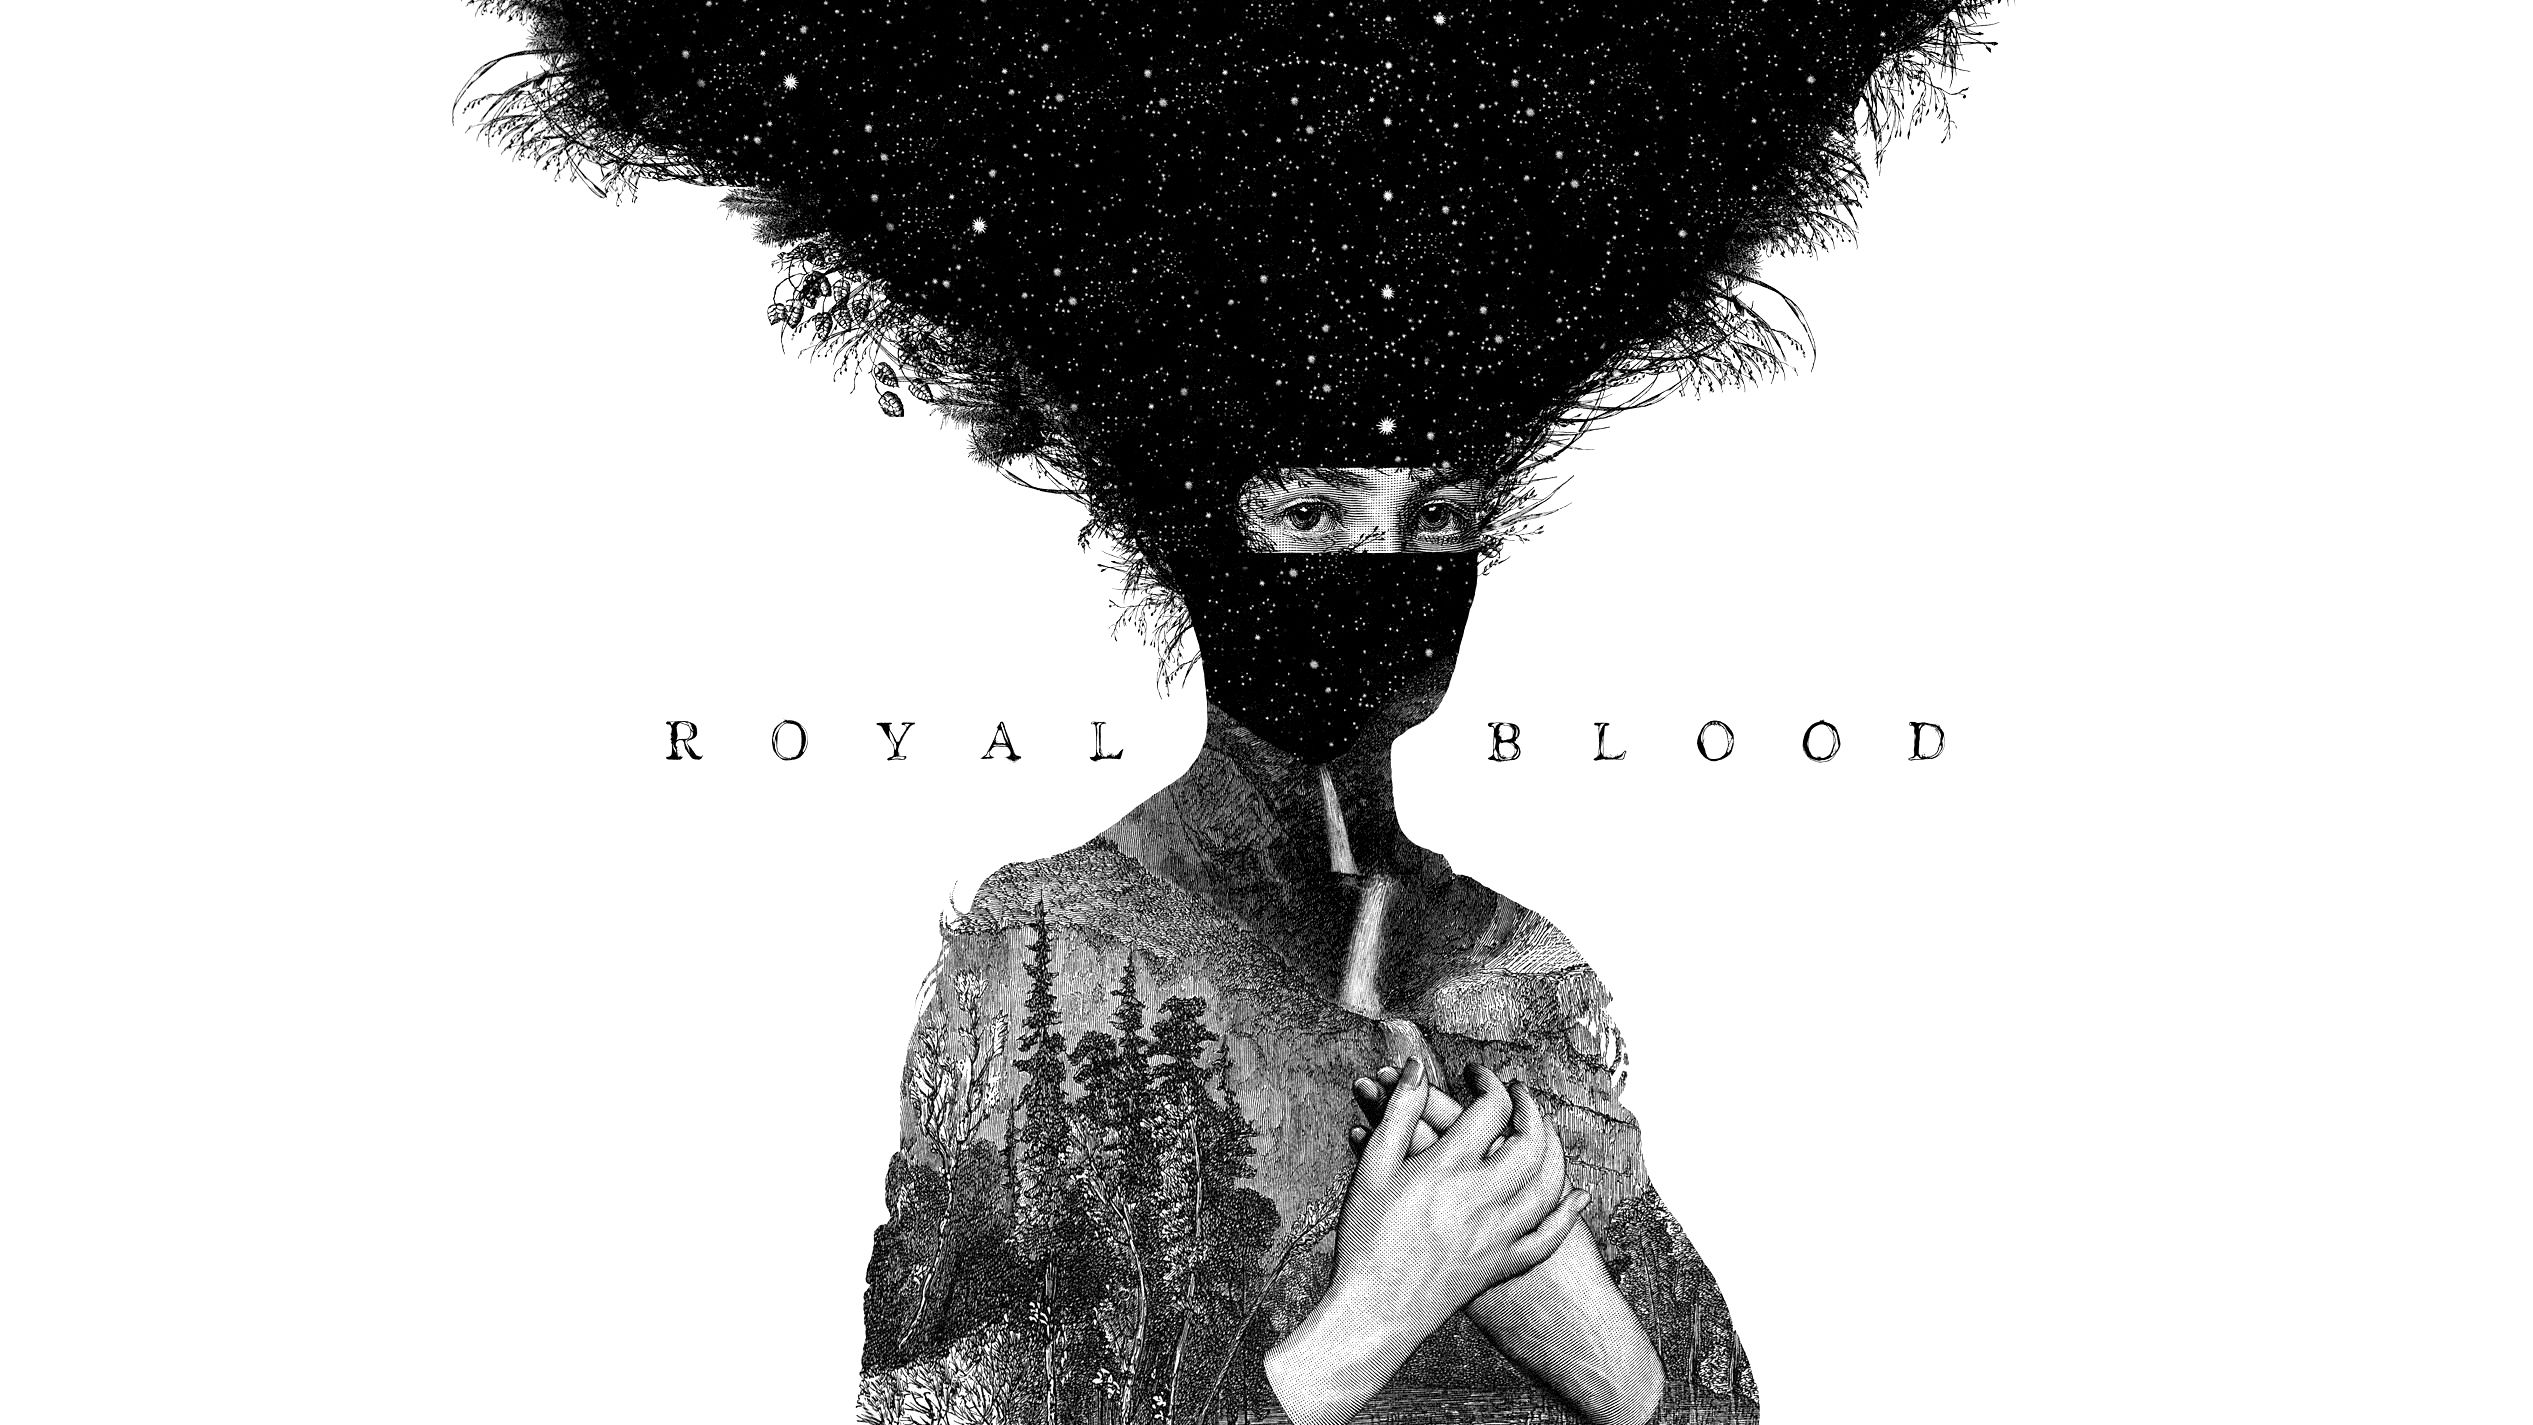 Royal Blood's Debut Album Wallpaper - Album on Imgur